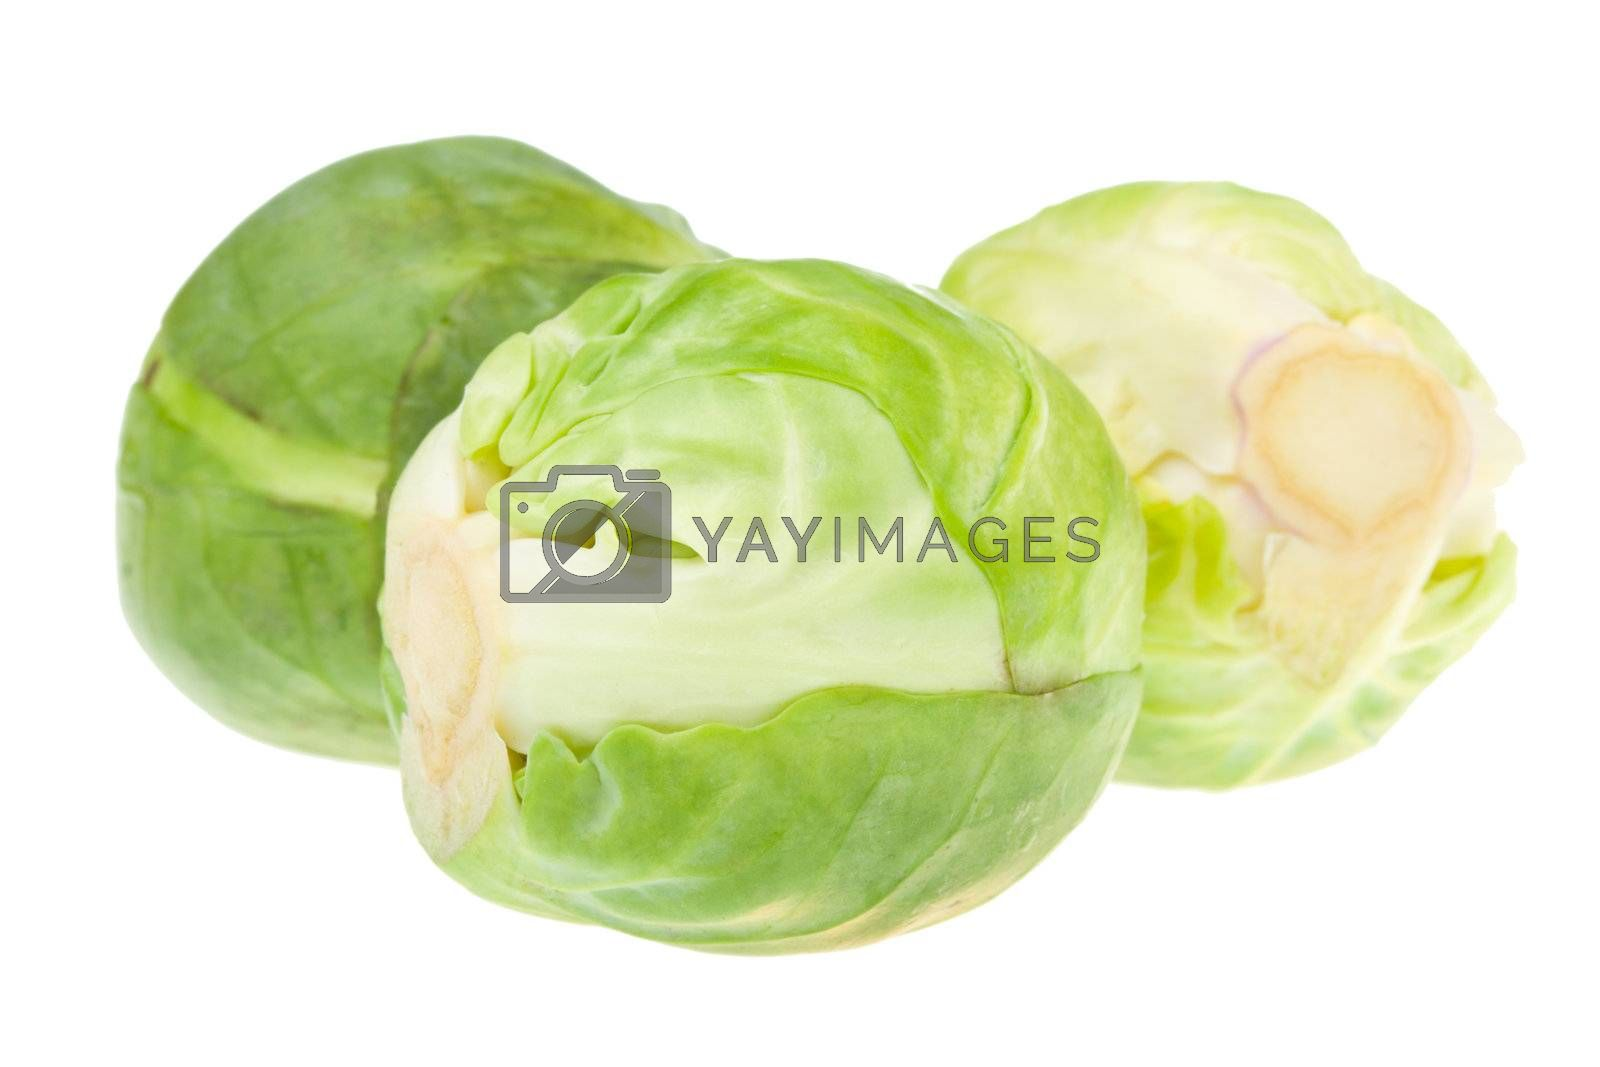 three brussels sprouts, isolated on white